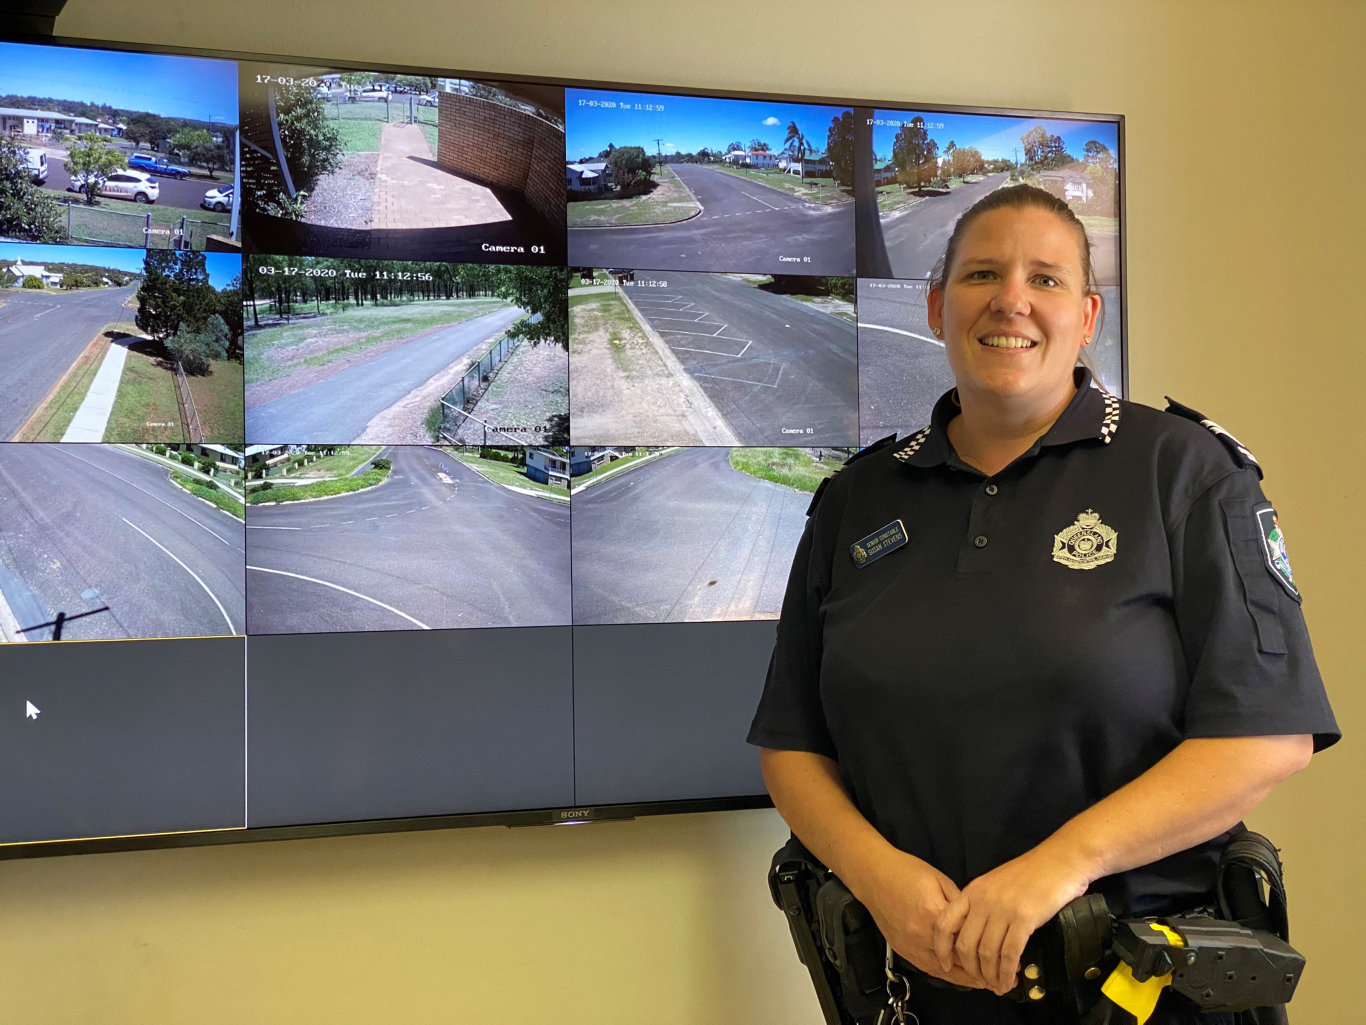 Senior Constable Susan Stevens from the Wondai Police at the official launch of the new Wondai security cameras.